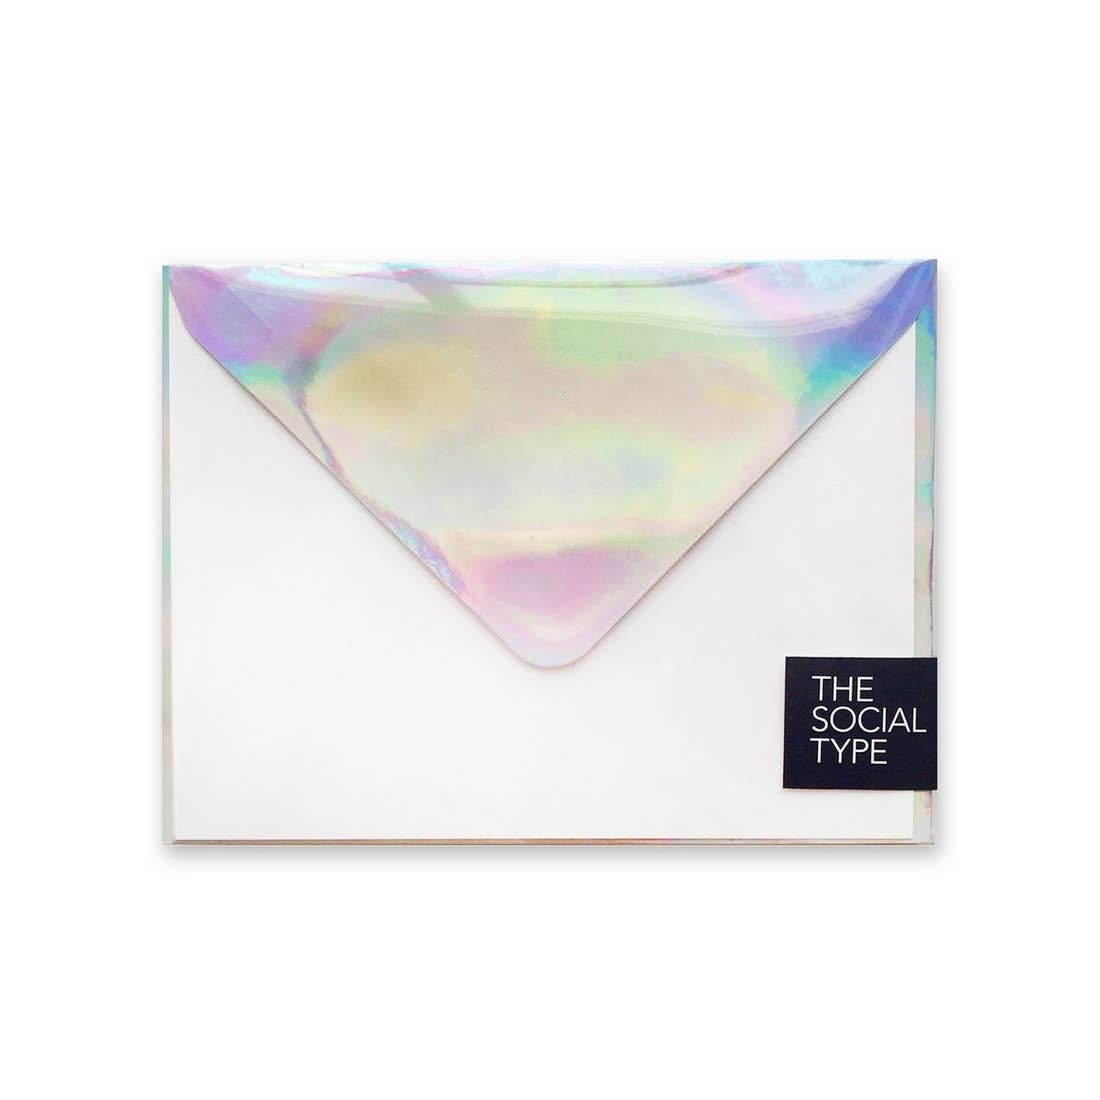 THE SOCIAL TYPE Hologram Card Set